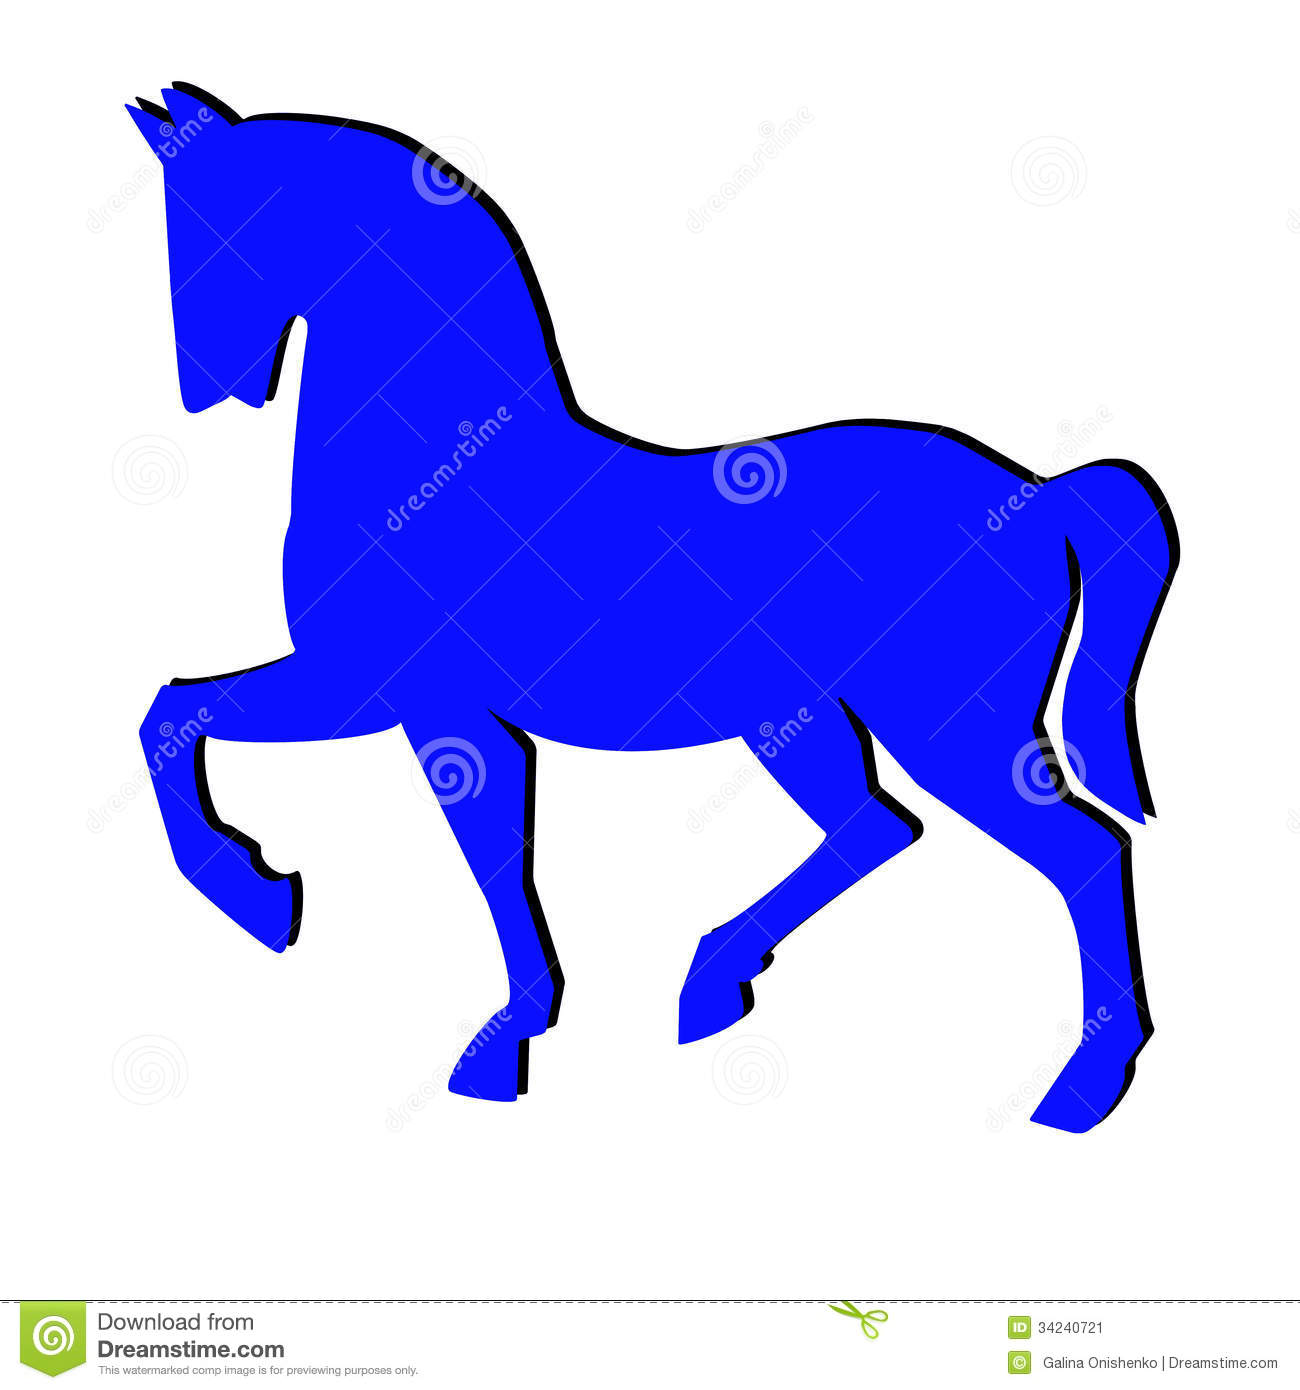 Blue Silhouette Of Horse On A White Background Stock Illustration.